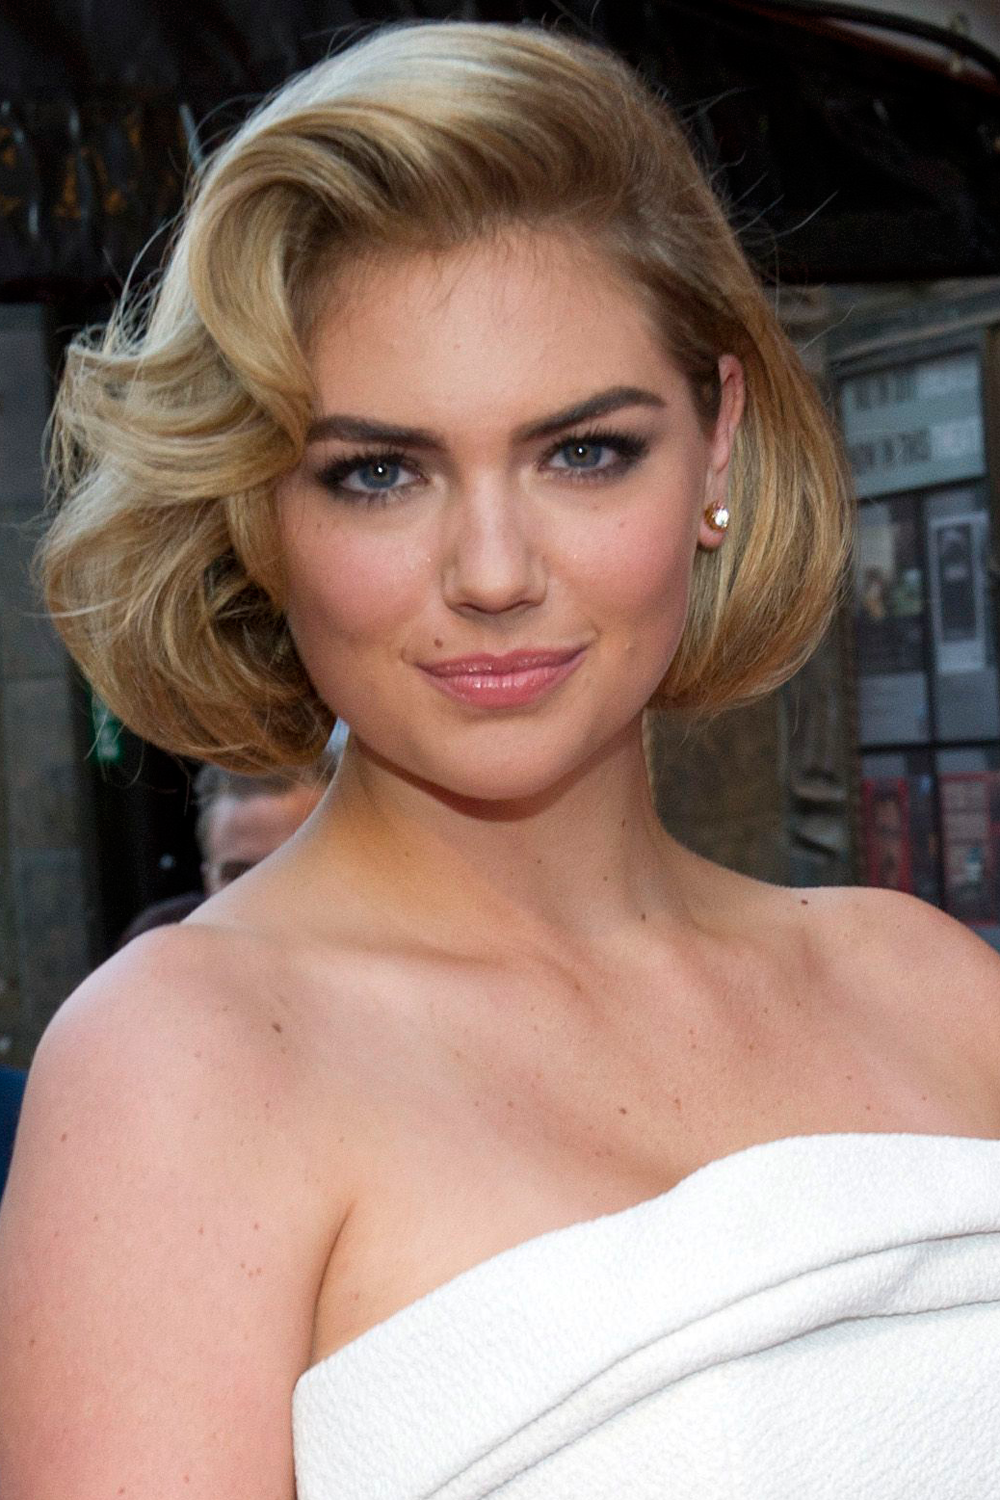 Kate Upton: 7 Updo Hairstyles We Can Copy From The Queen Of Glam